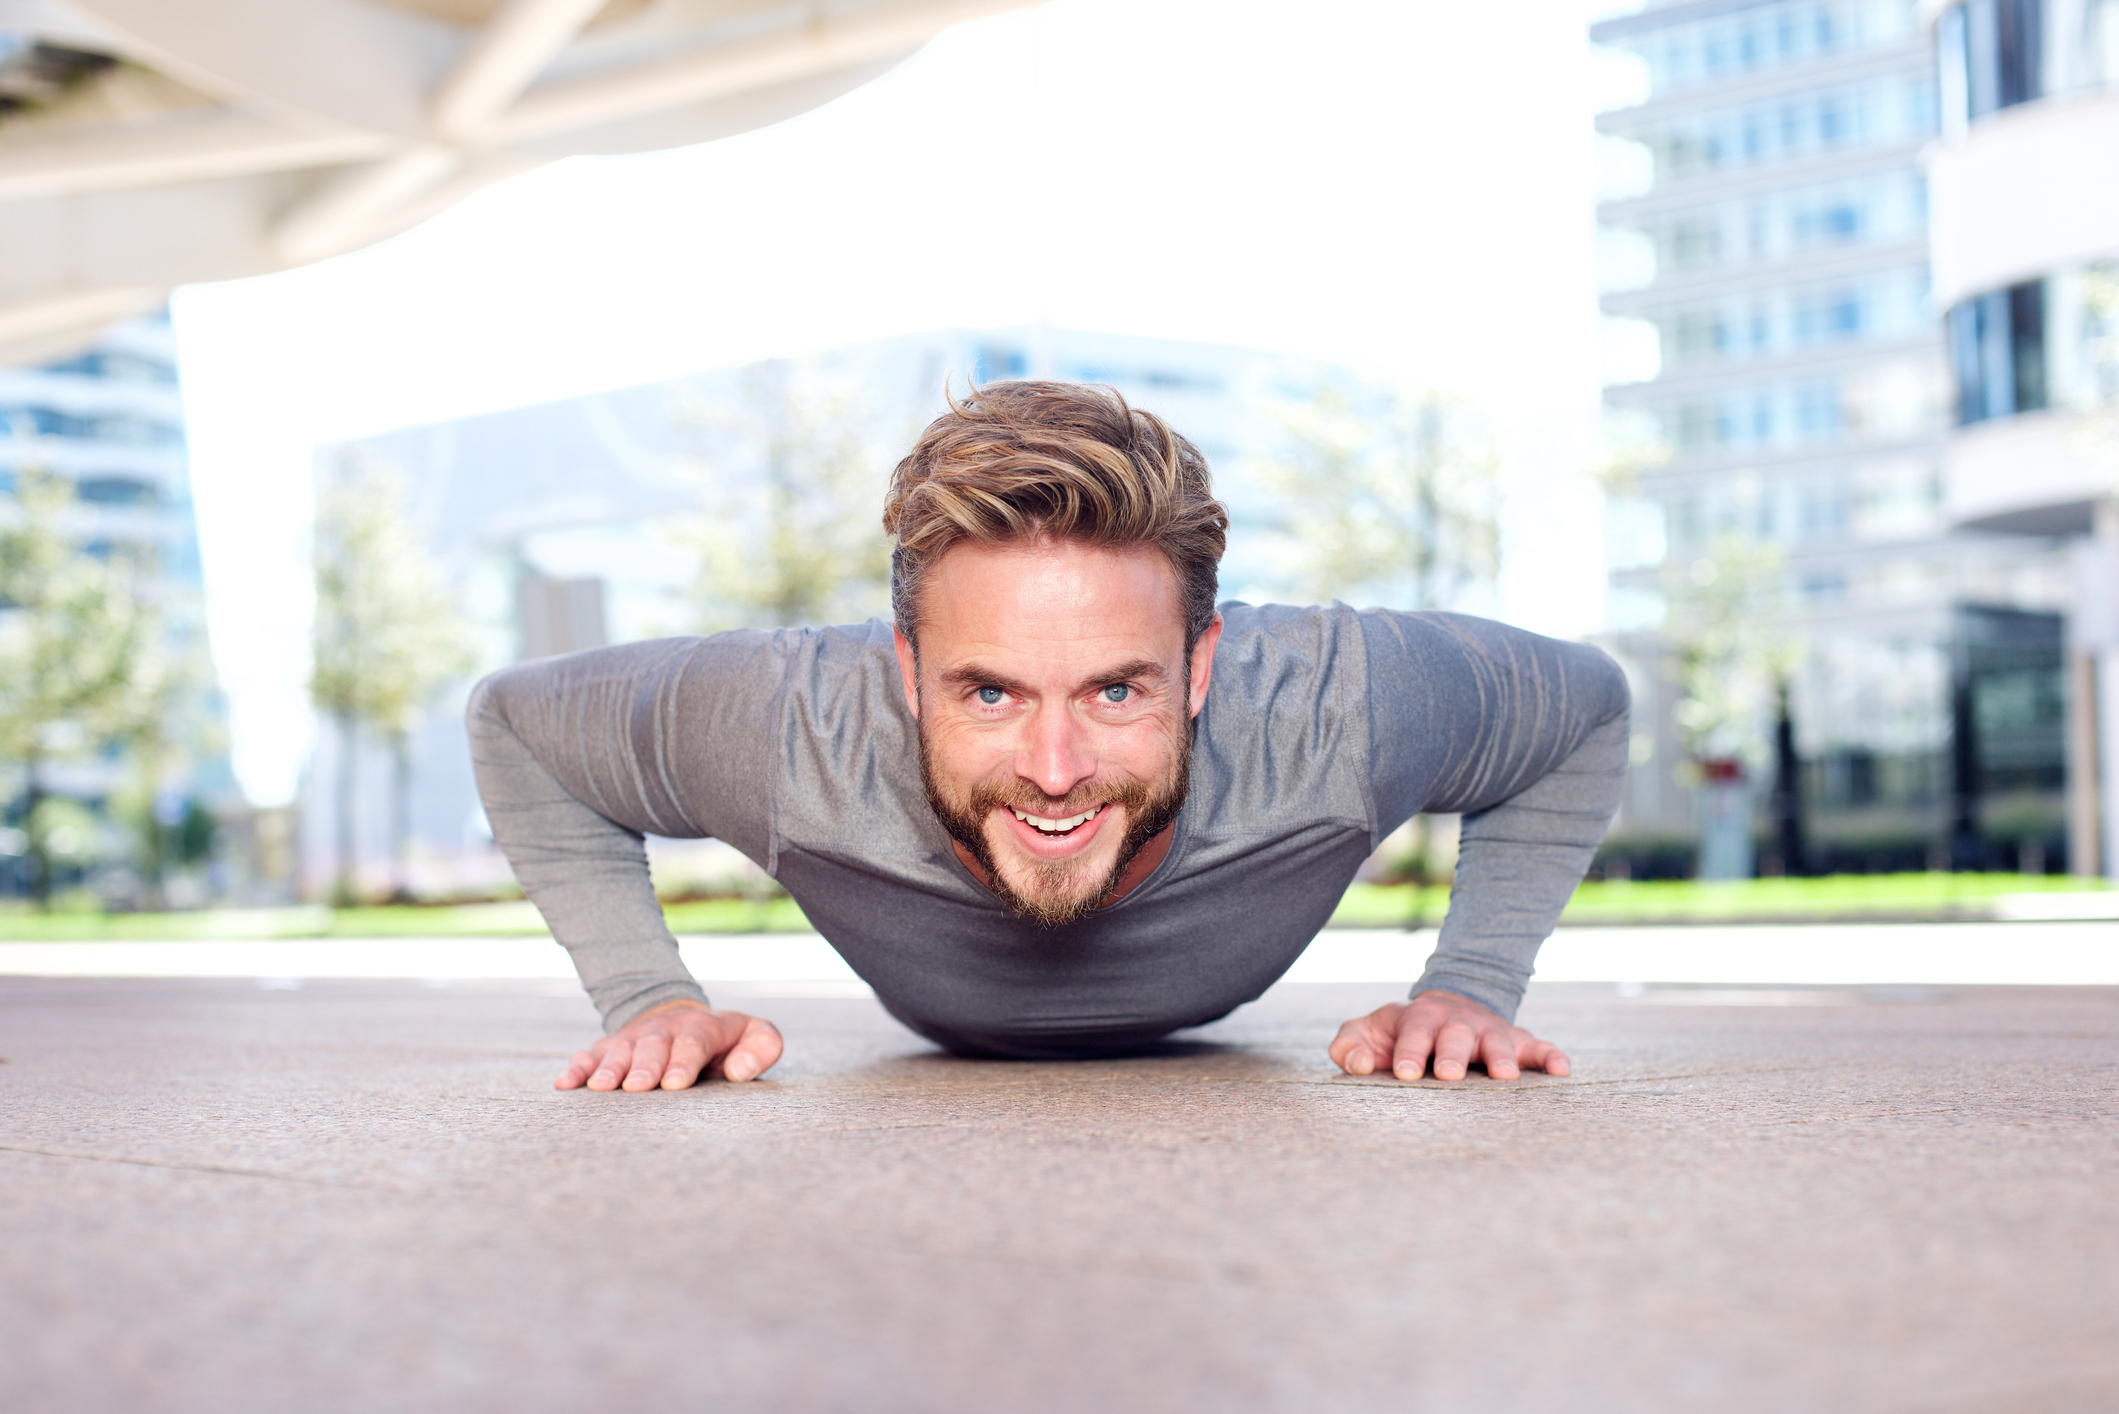 What the number of pushups a man can do reveals about his health